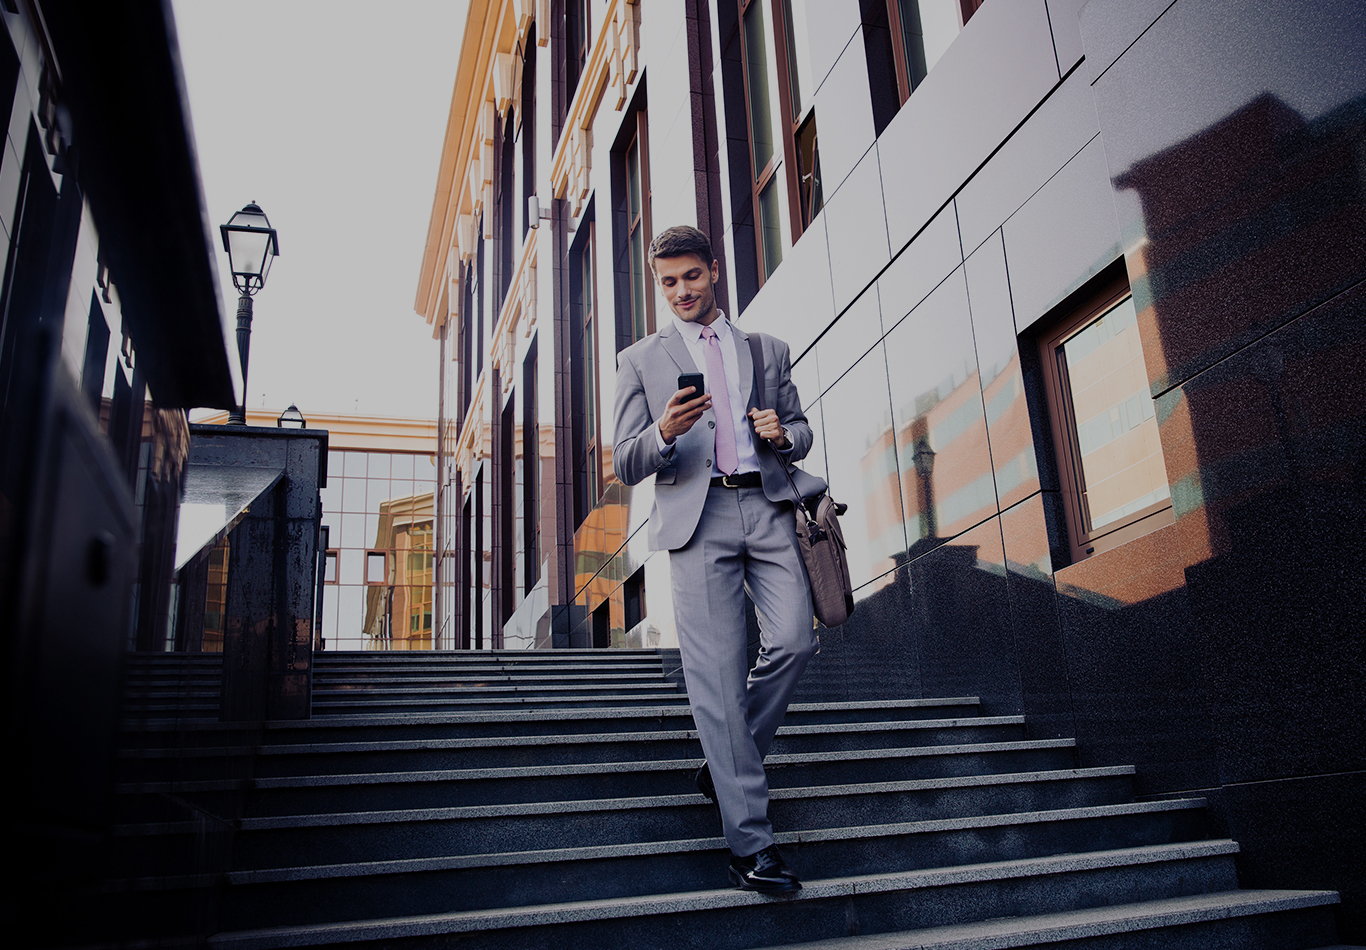 A man in a suit is walking down stairs and looking at a phone